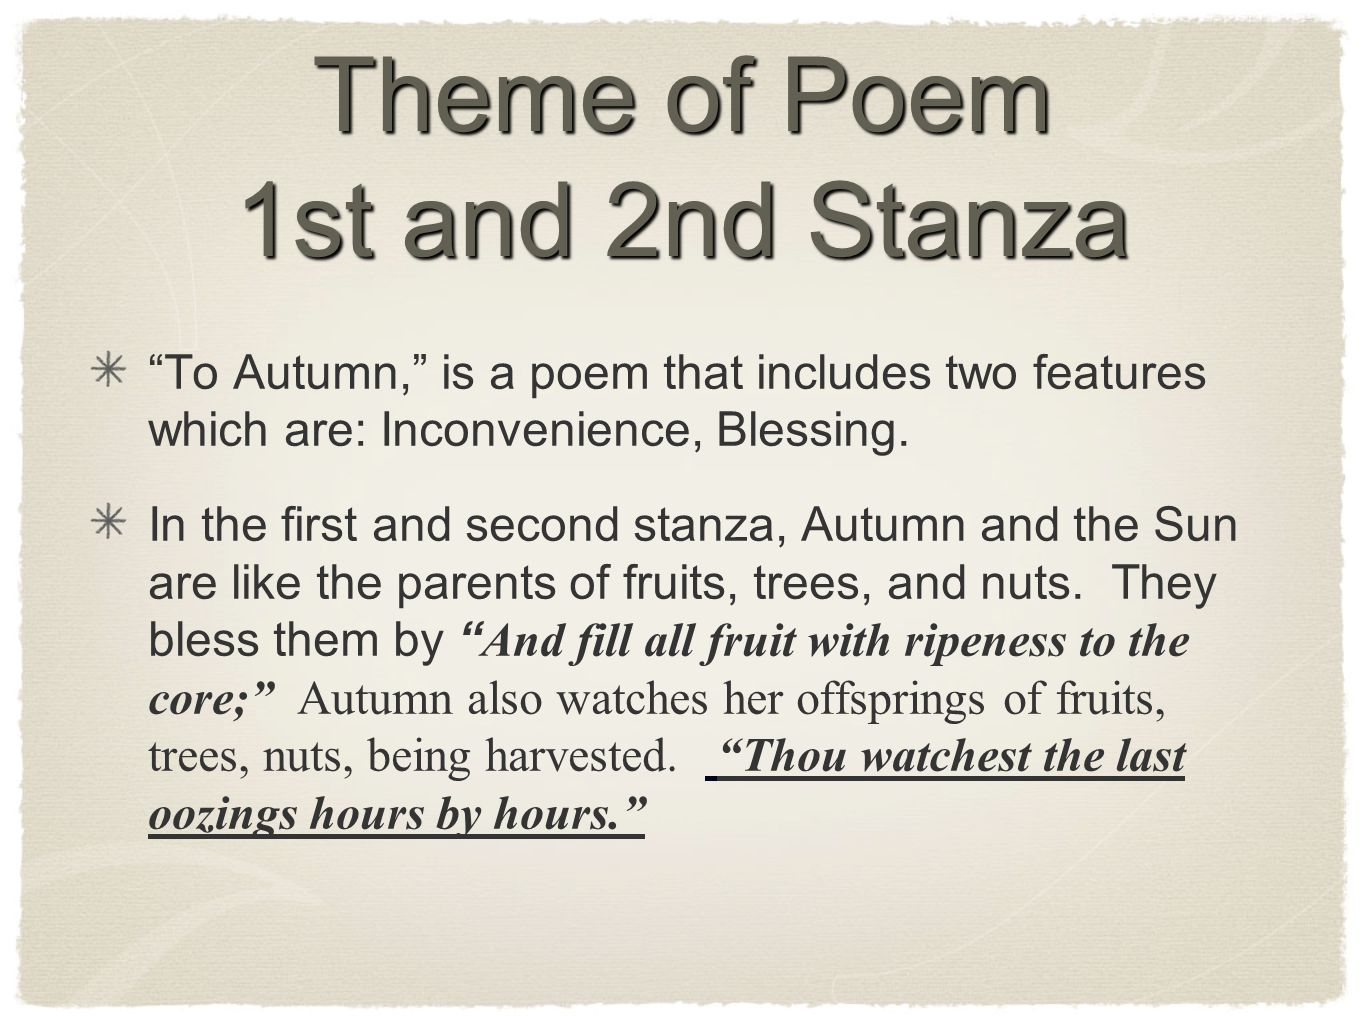 Theme of Poem 1st and 2nd Stanza